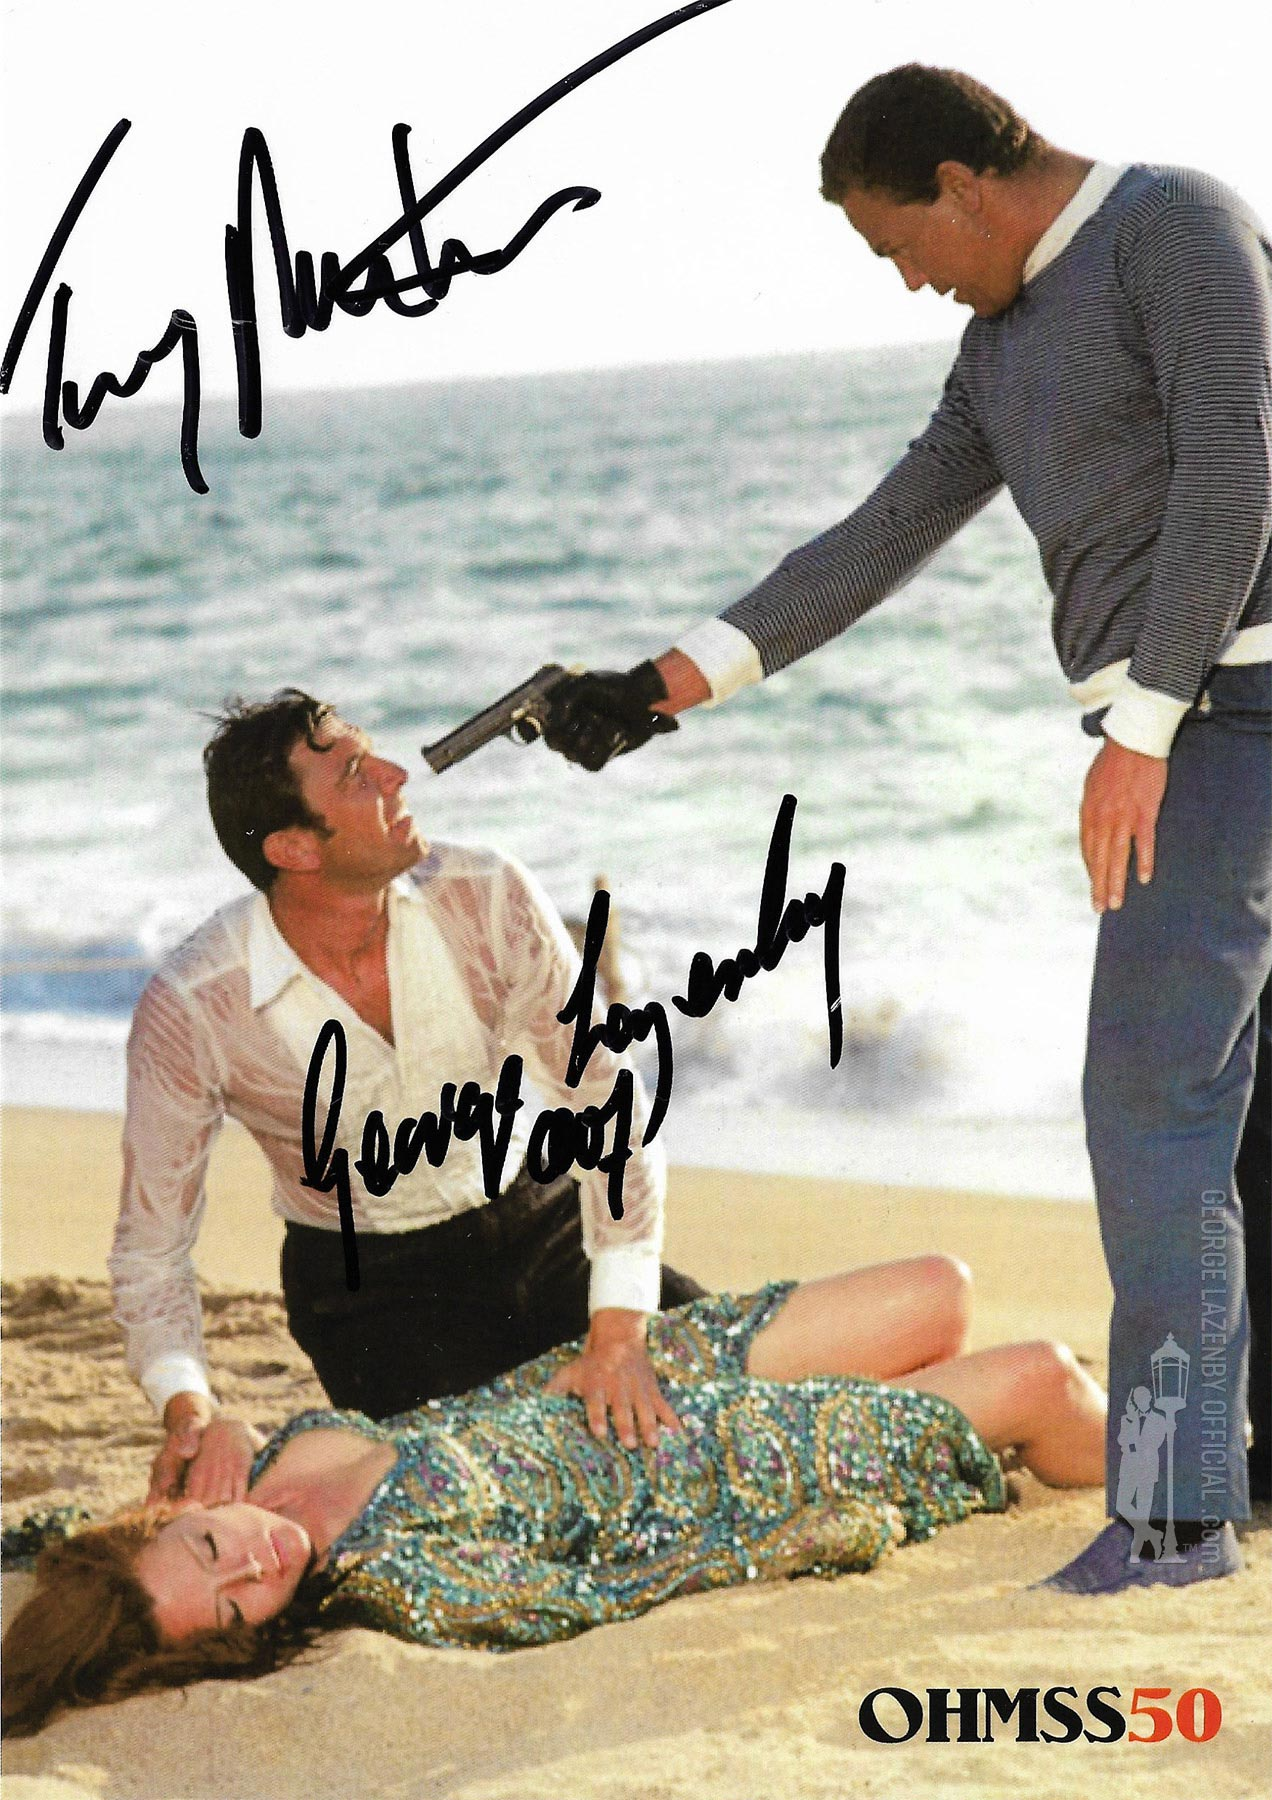 OHMSS 50 George Lazenby signed photograph GLOHMSS50-05